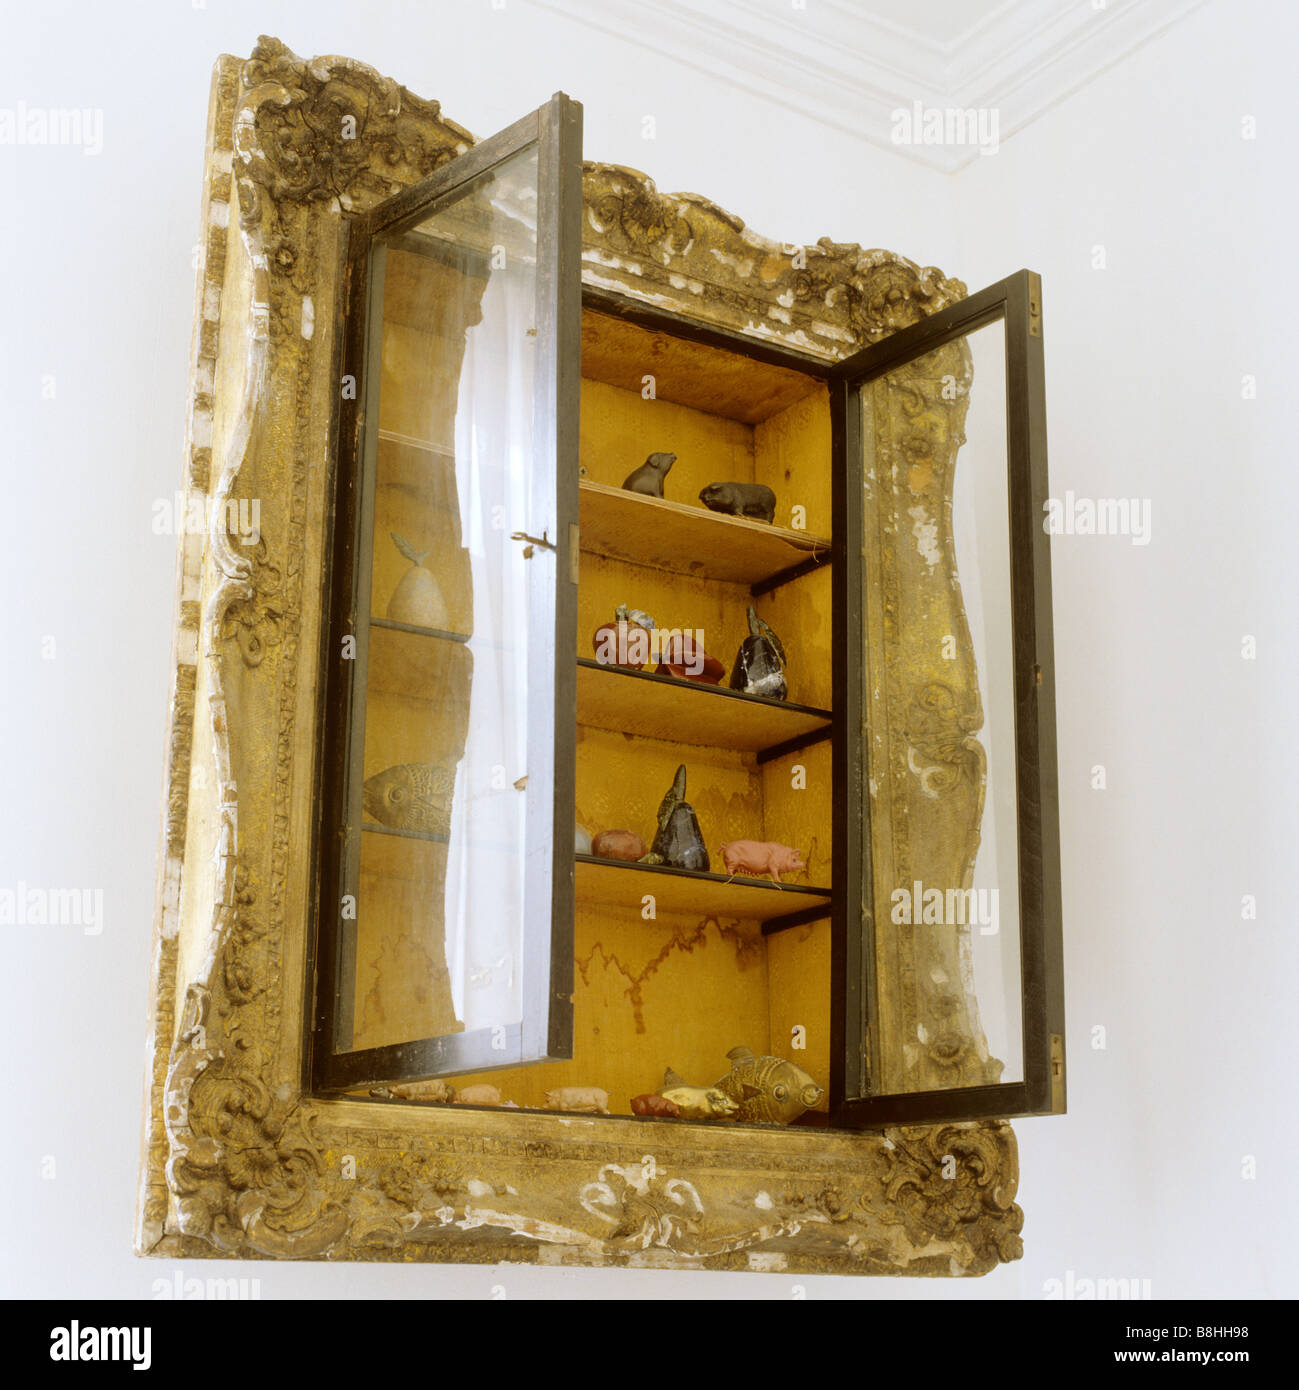 Recessed wall cabinet with an old picture frame around it - Stock Image